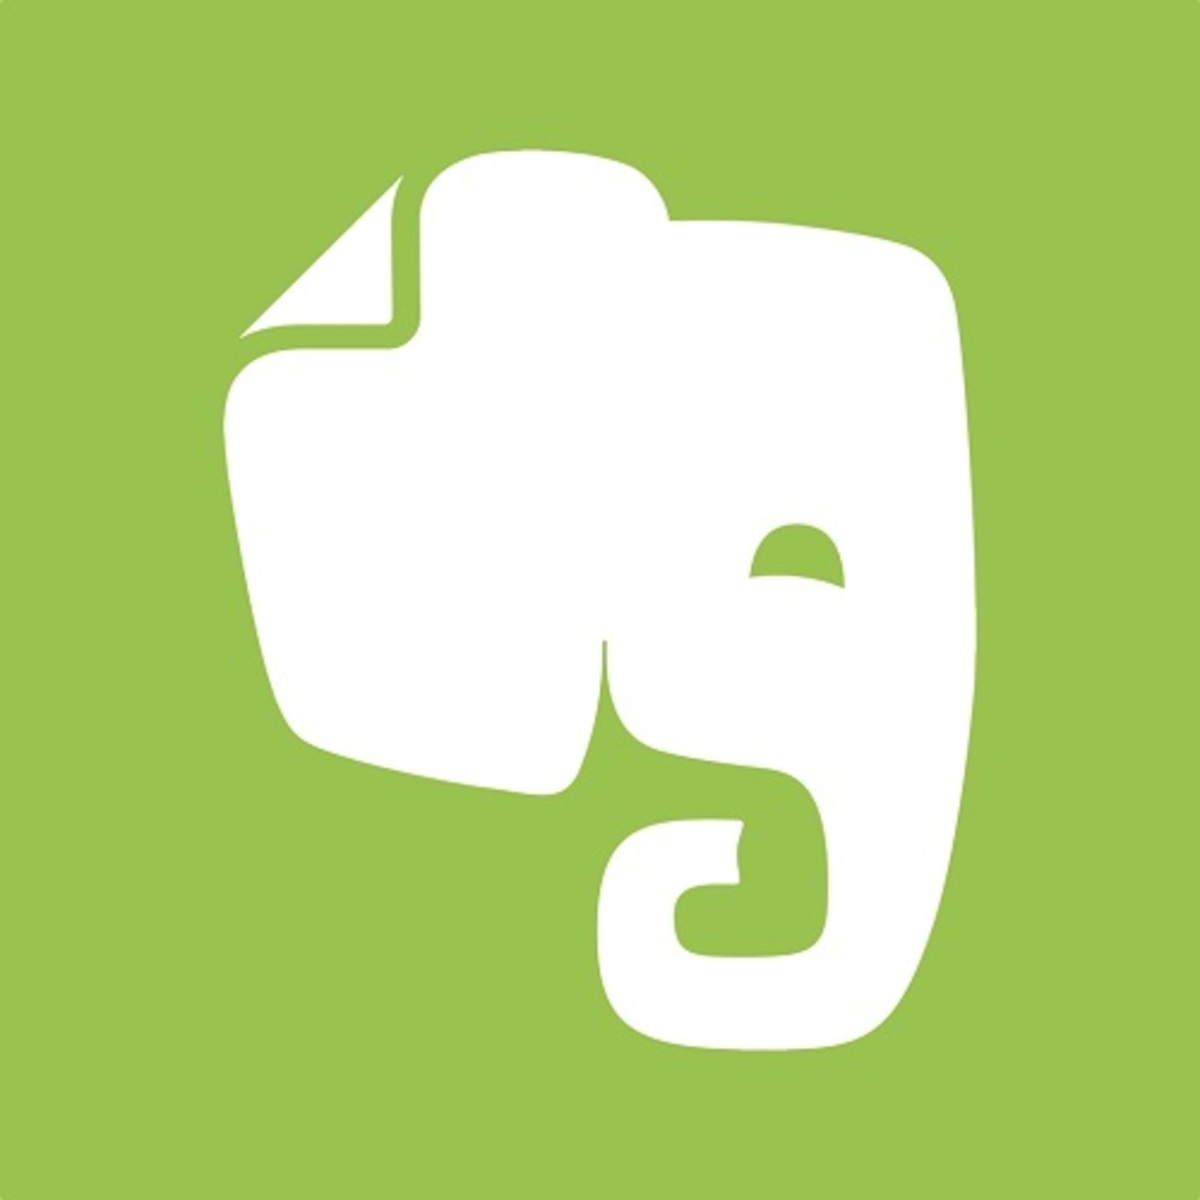 Evernote icon image